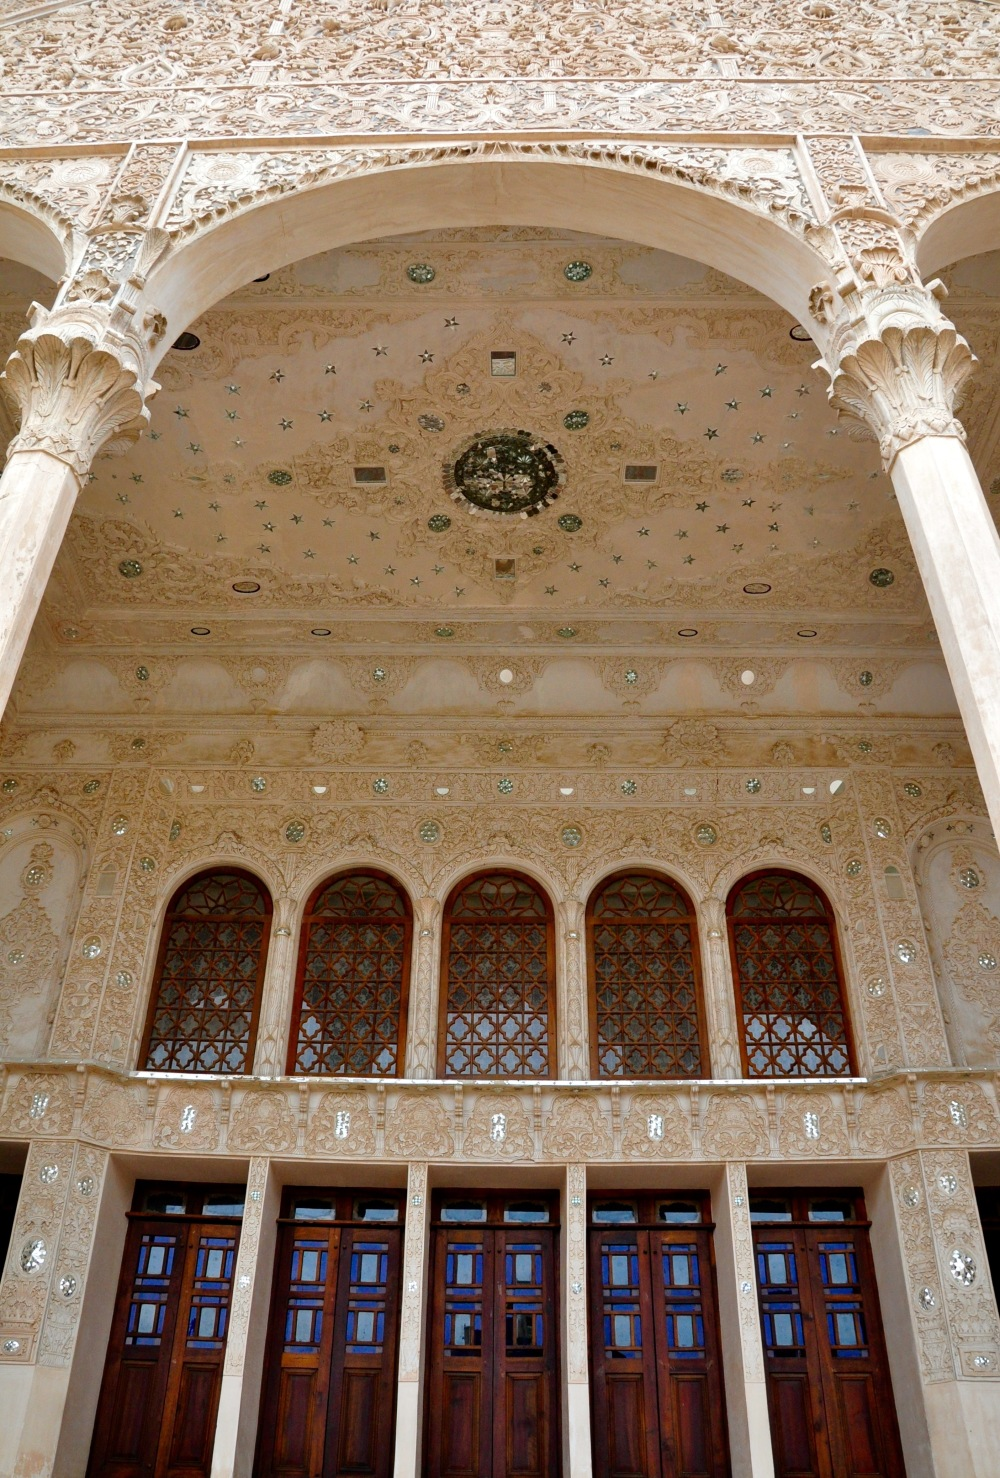 mirror-work-on-tabatabaei-house-facade-kashan-iran